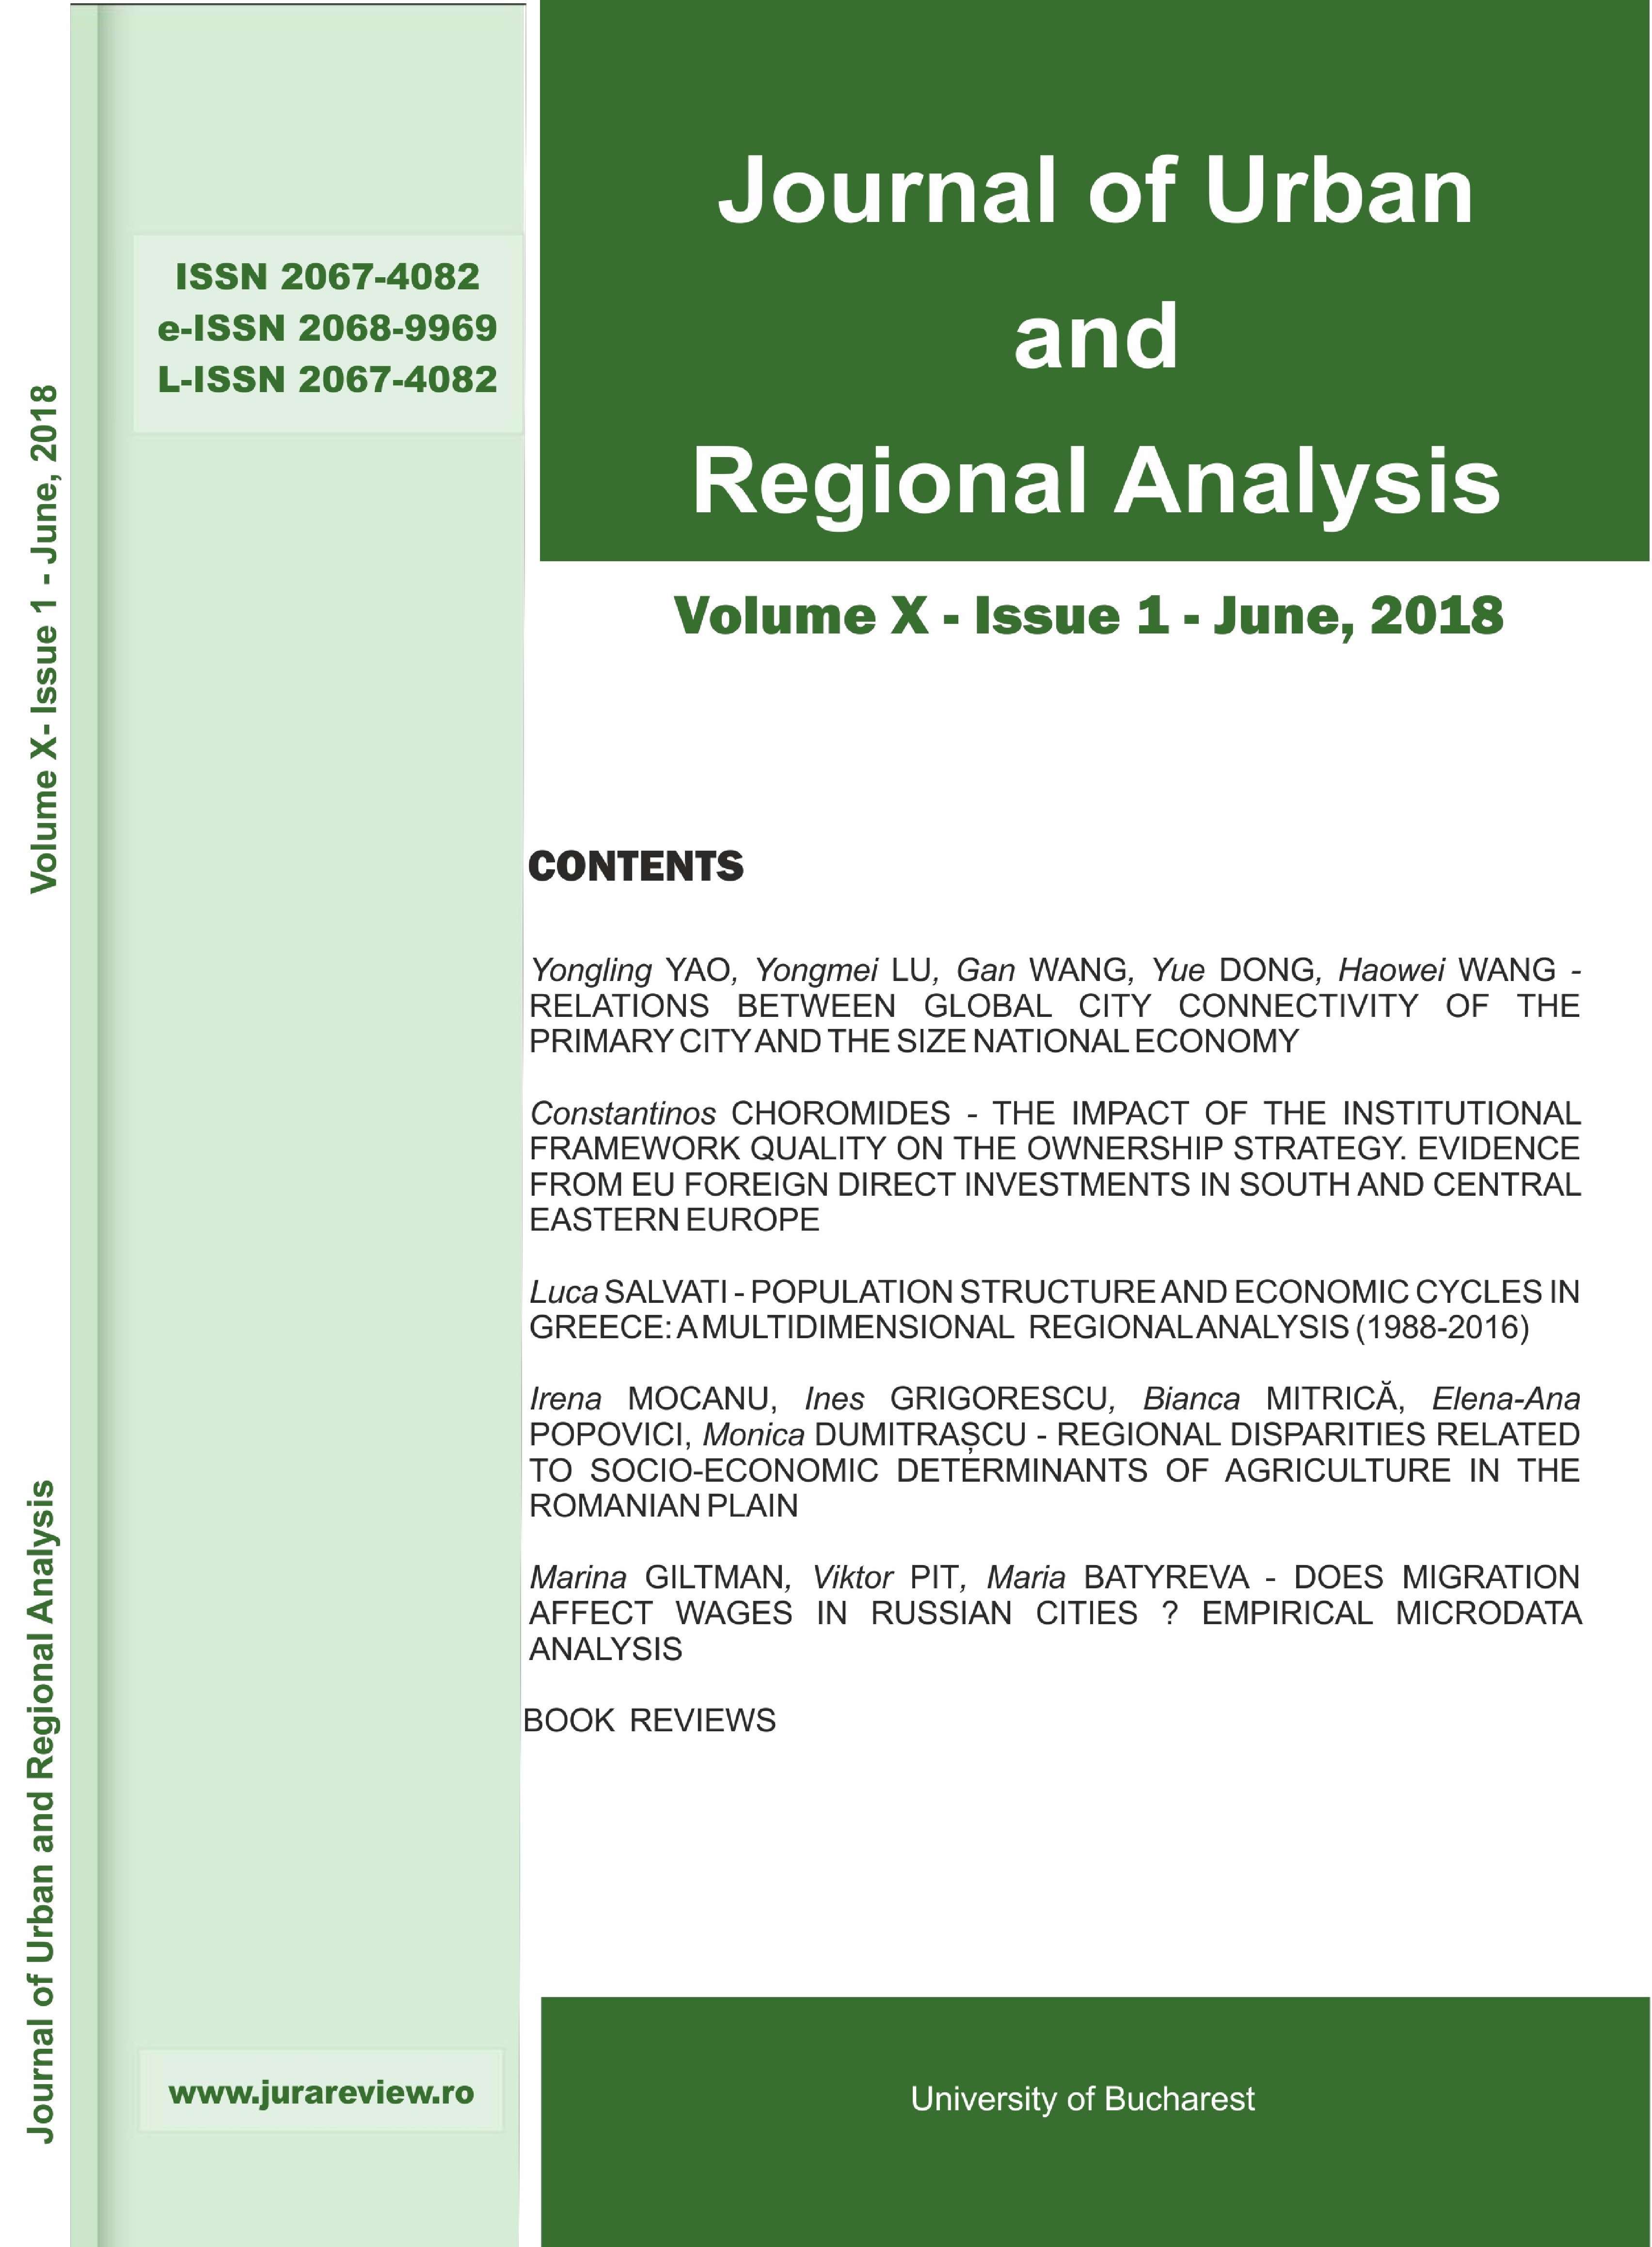 Journal of Urban and Regional Analysis Cover Image